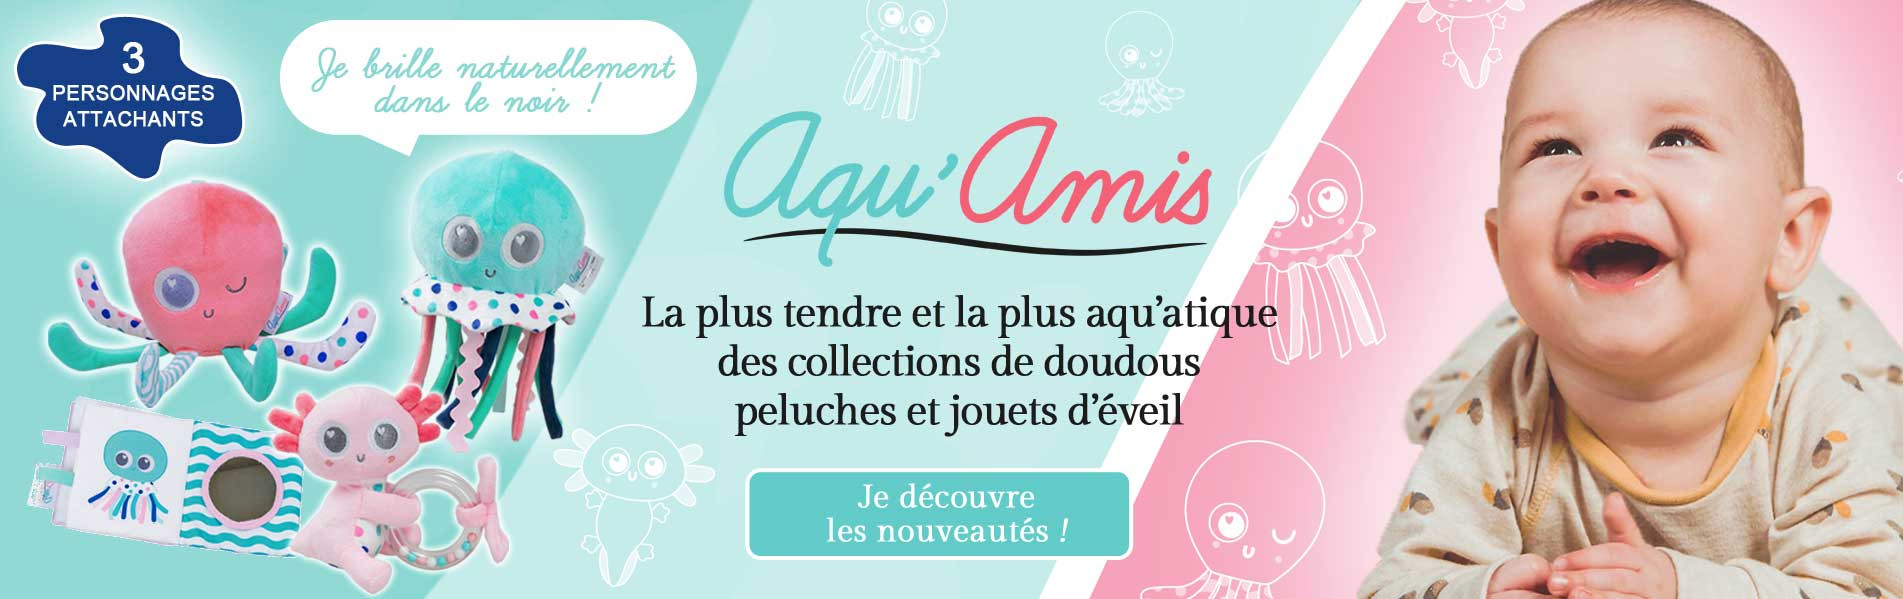 Discover the new collection : Aqu'amis !